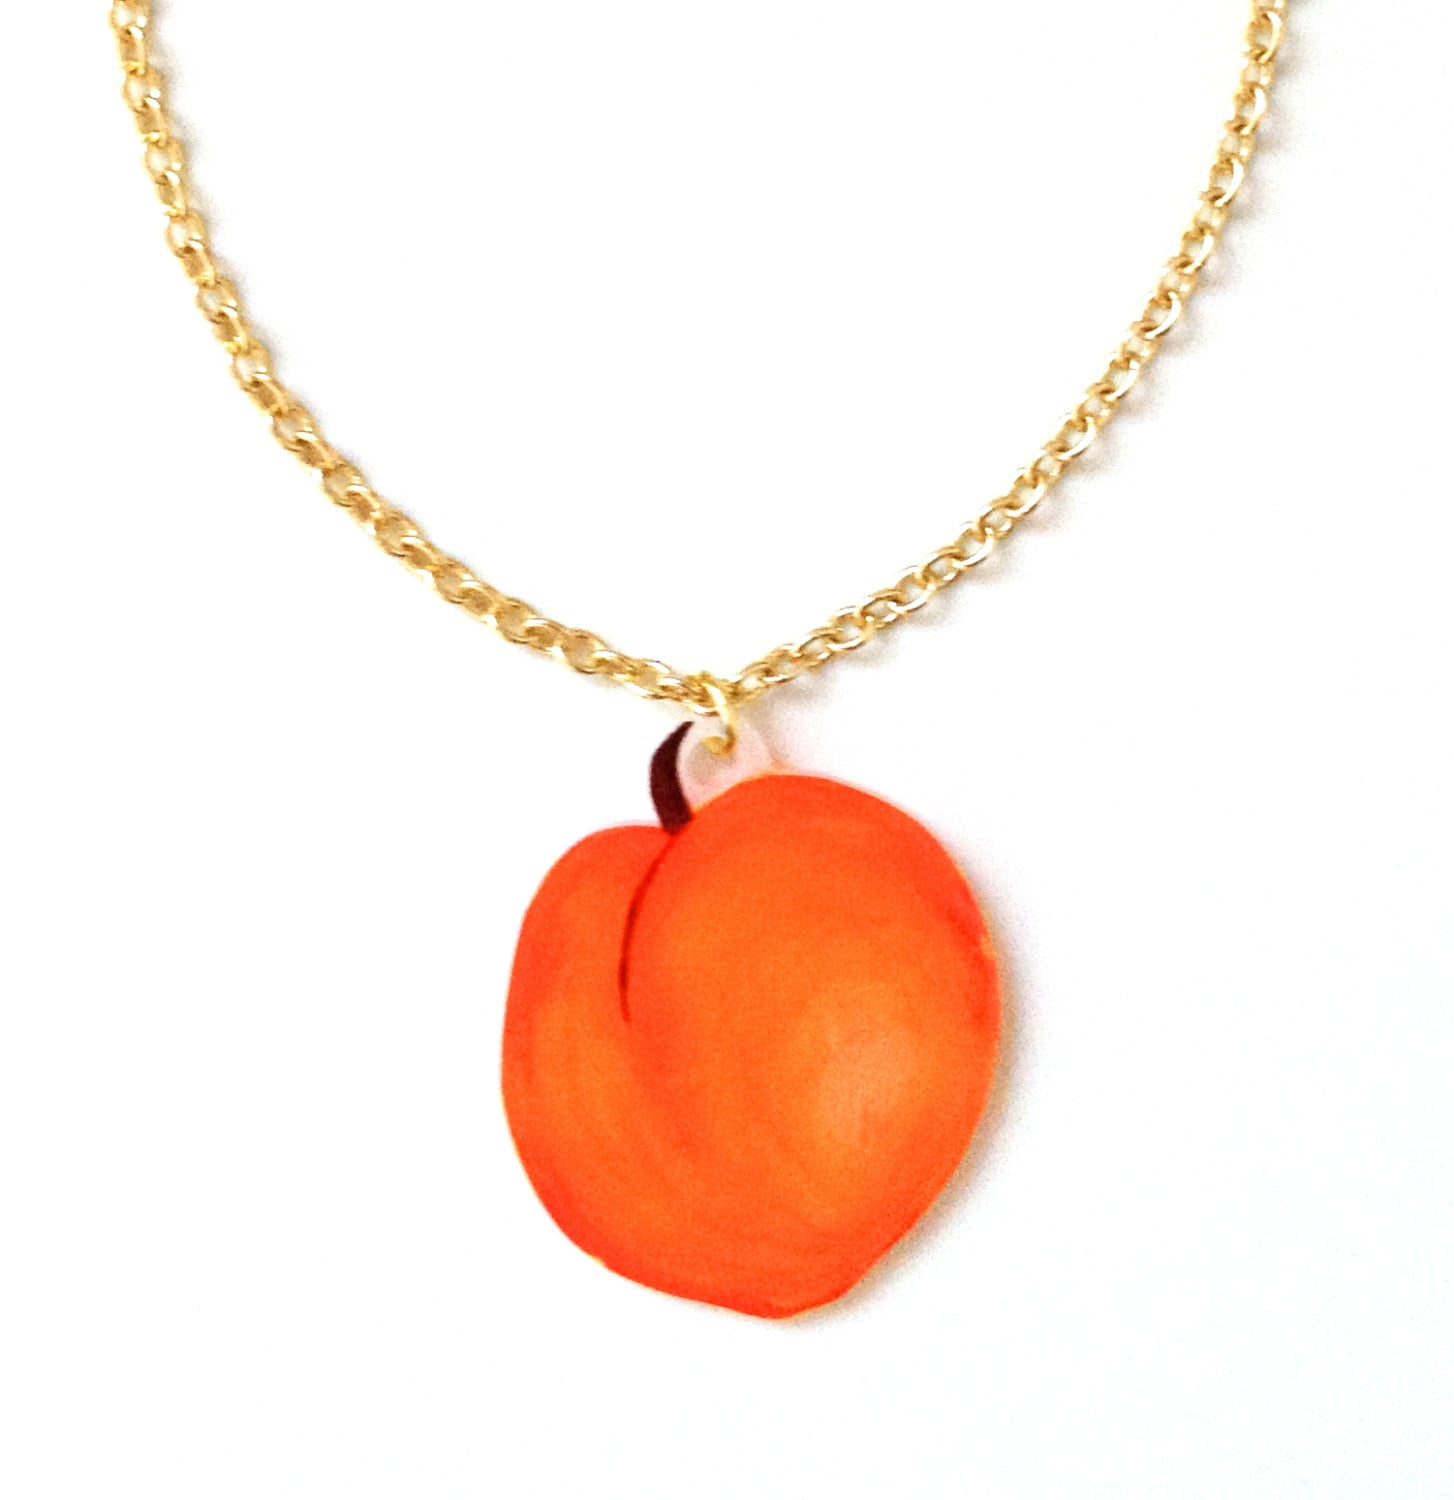 pendant luu discounts dsc necklace ual retail chan designer peach products tropical